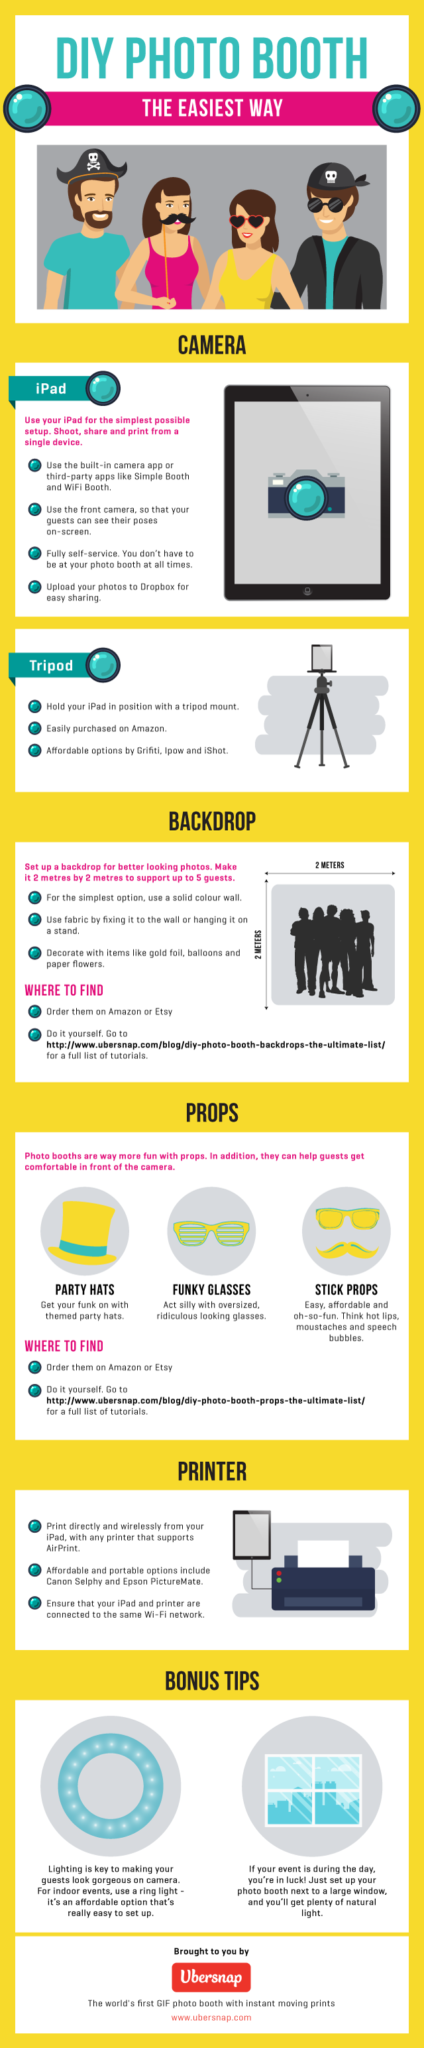 DIY Photo Booth - The Easiest Way (Infographic)